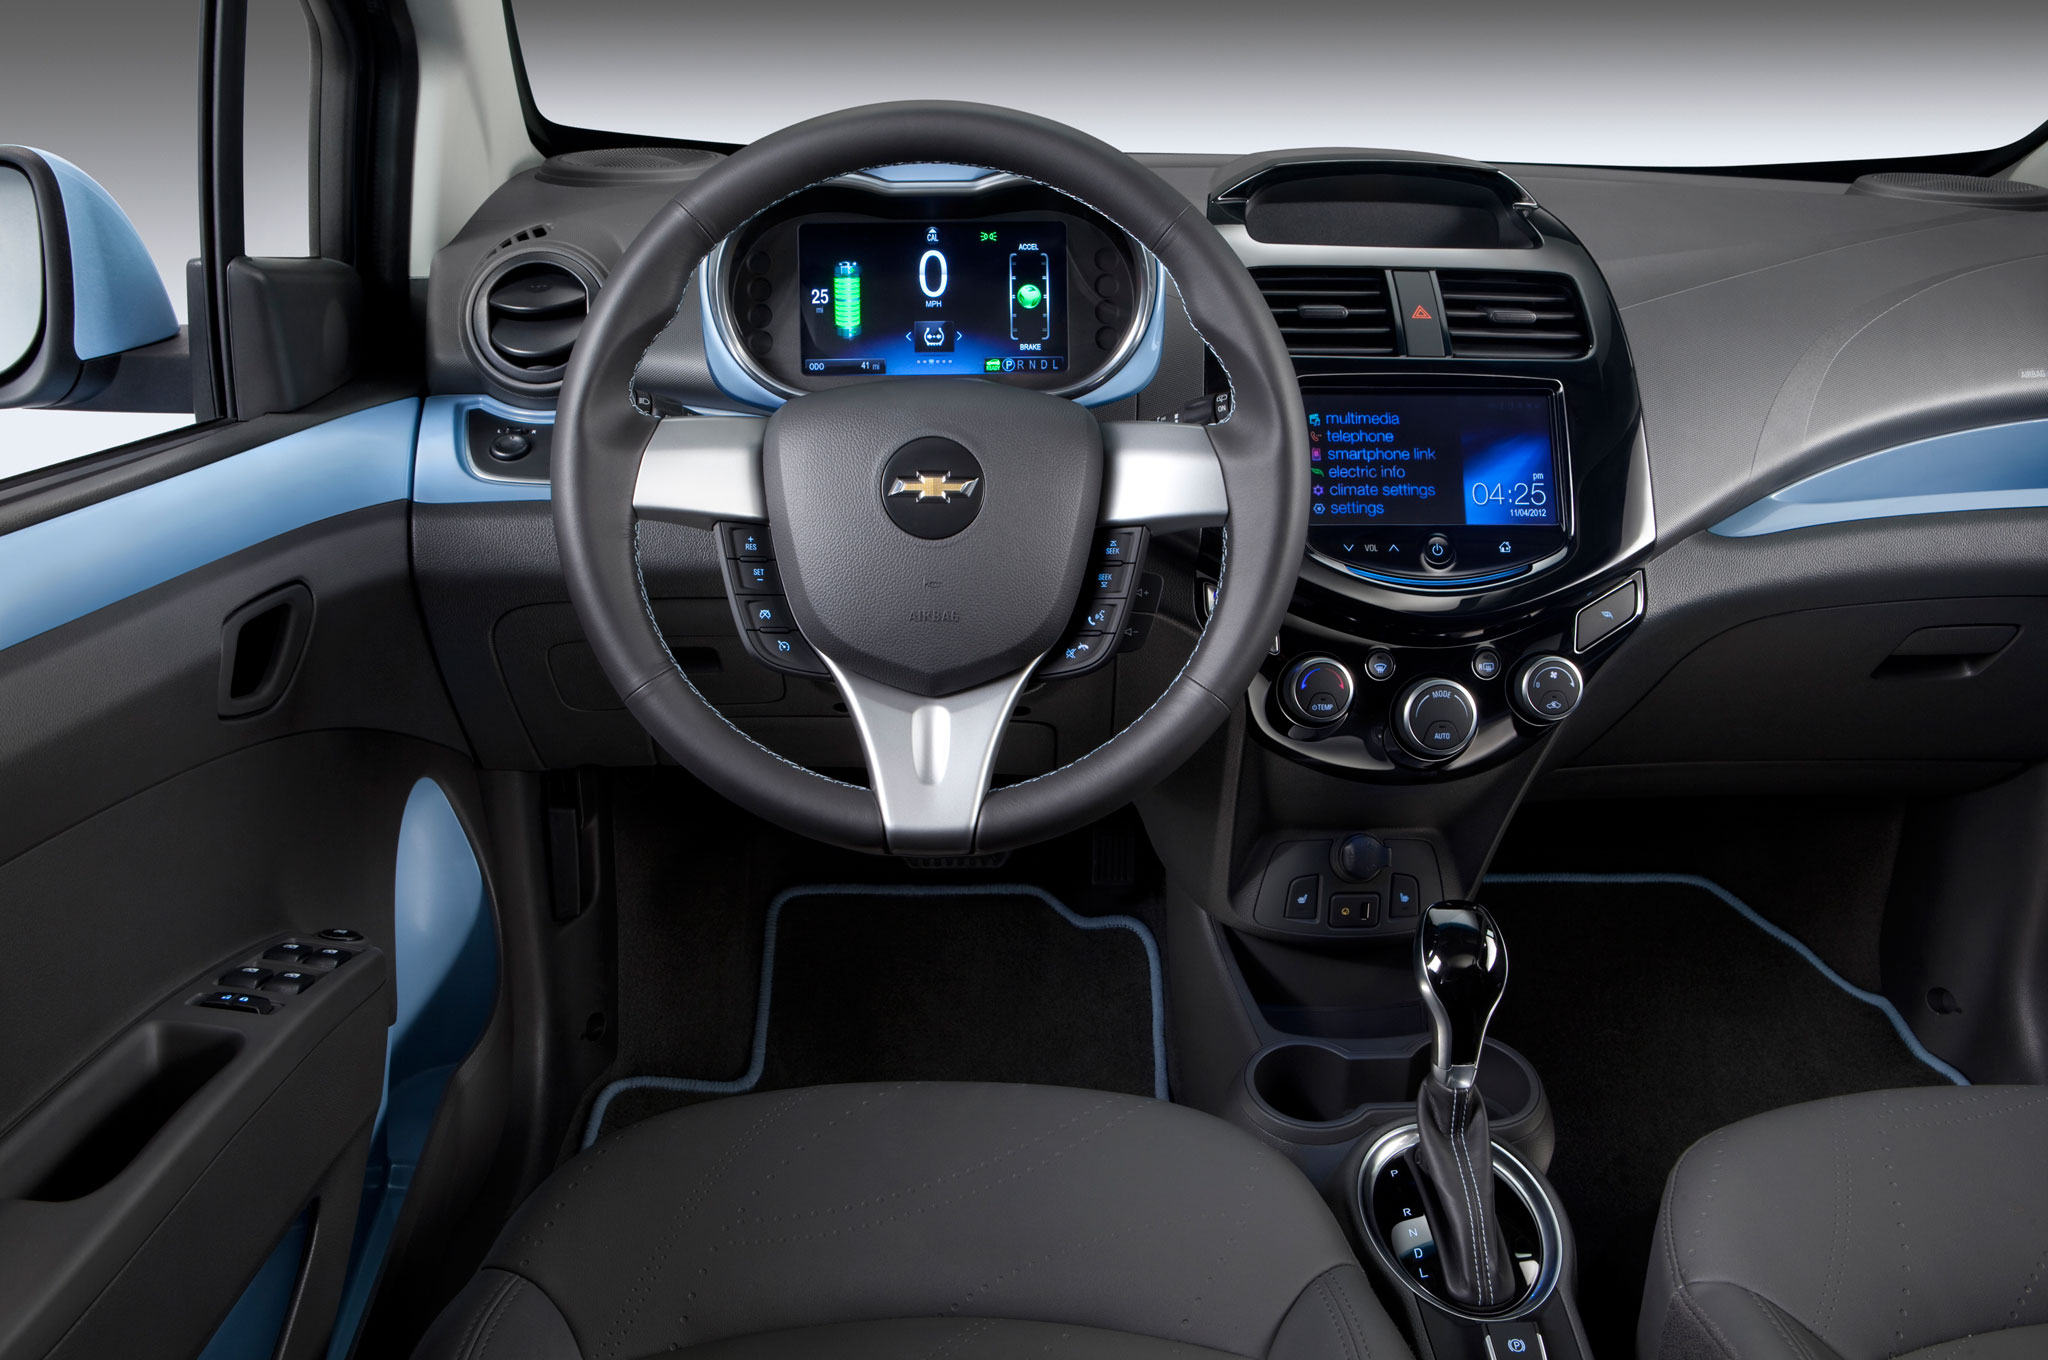 2015 Chevrolet Spark EV interior report chevrolet bolt ev begins production in michigan in 2016 2017 Chevy Spark EV at gsmx.co